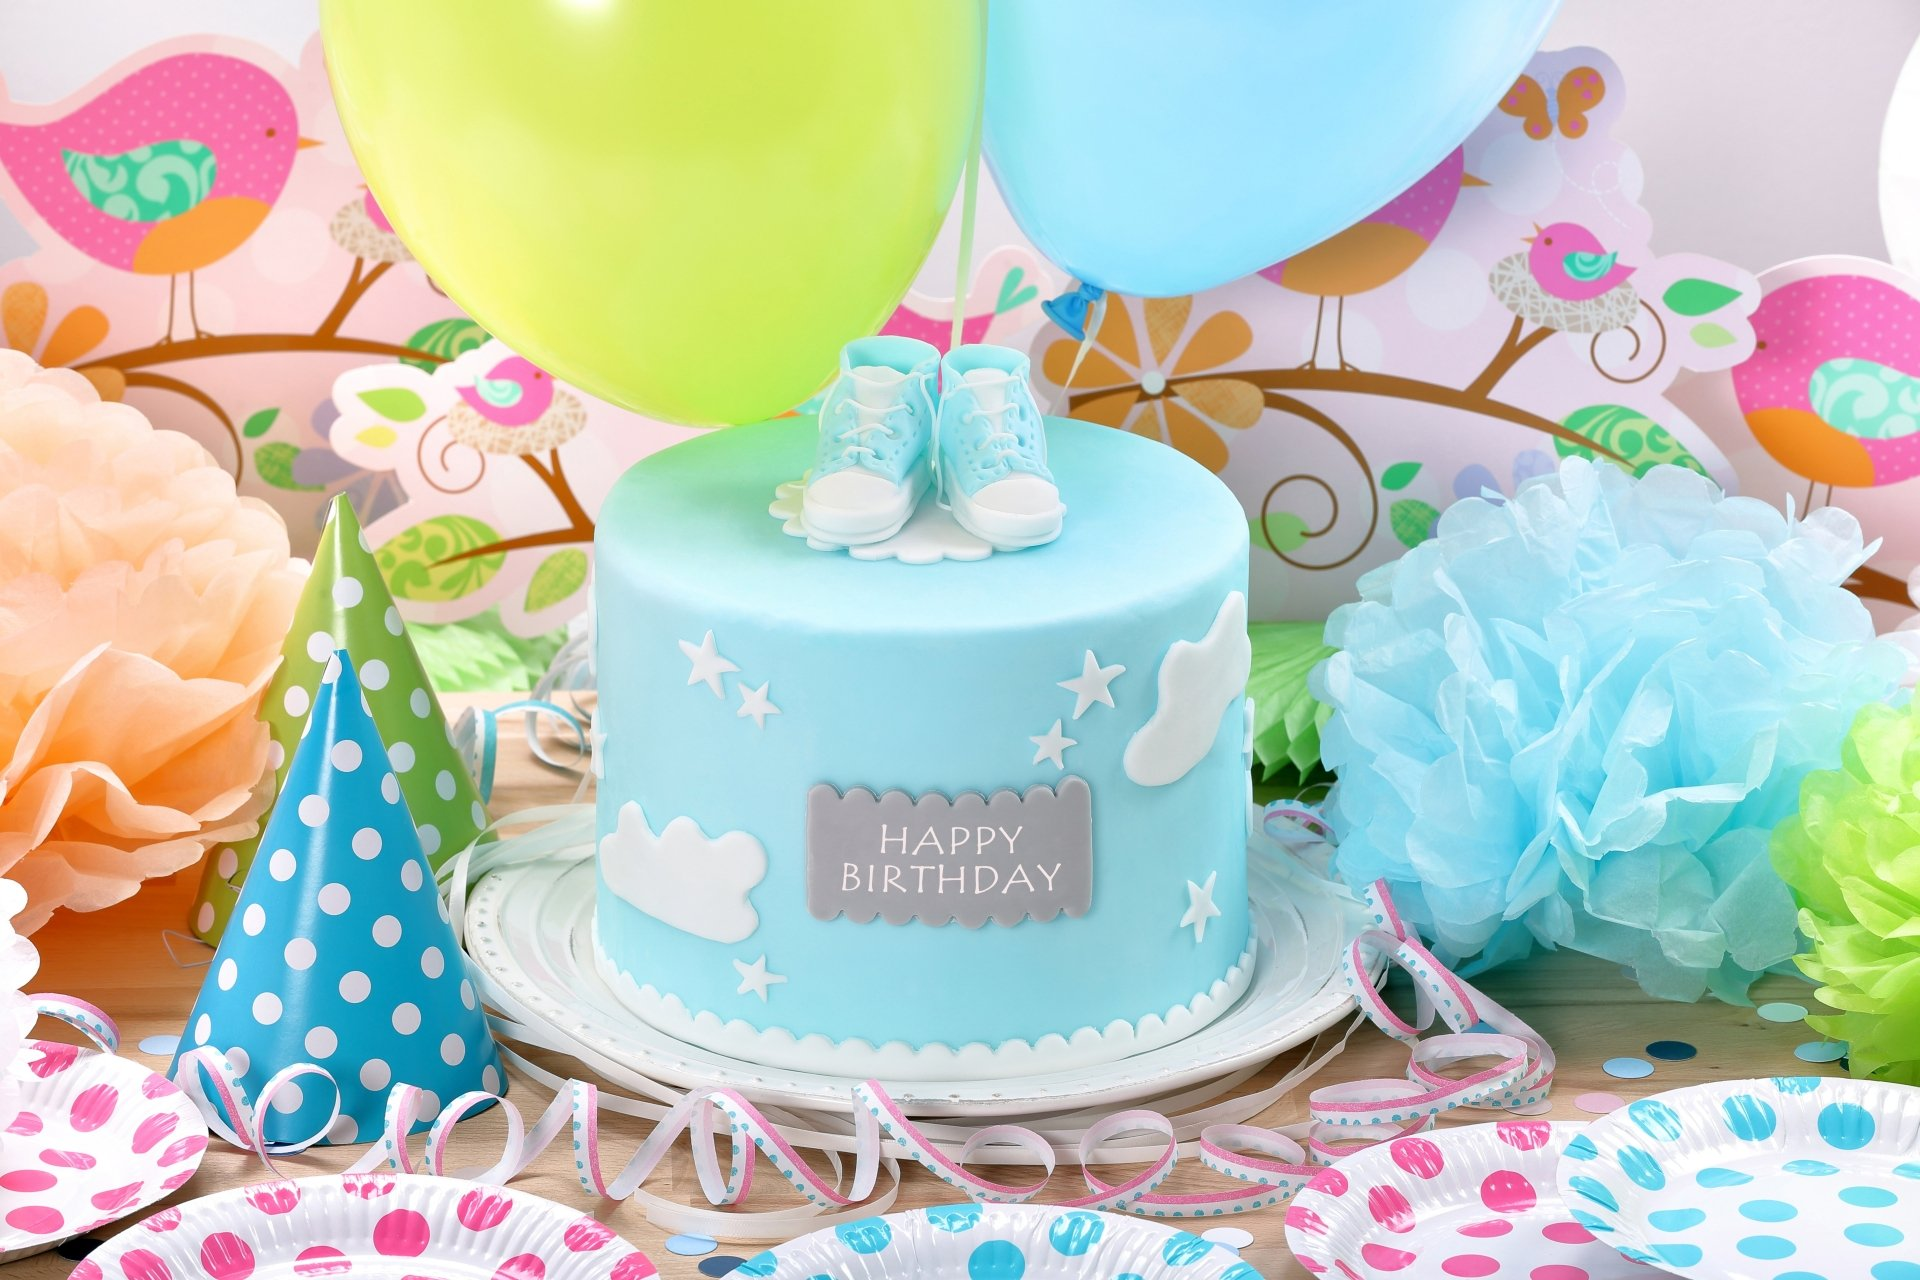 Holiday - Birthday  Happy Birthday Cake Pastry Colors Celebration Wallpaper